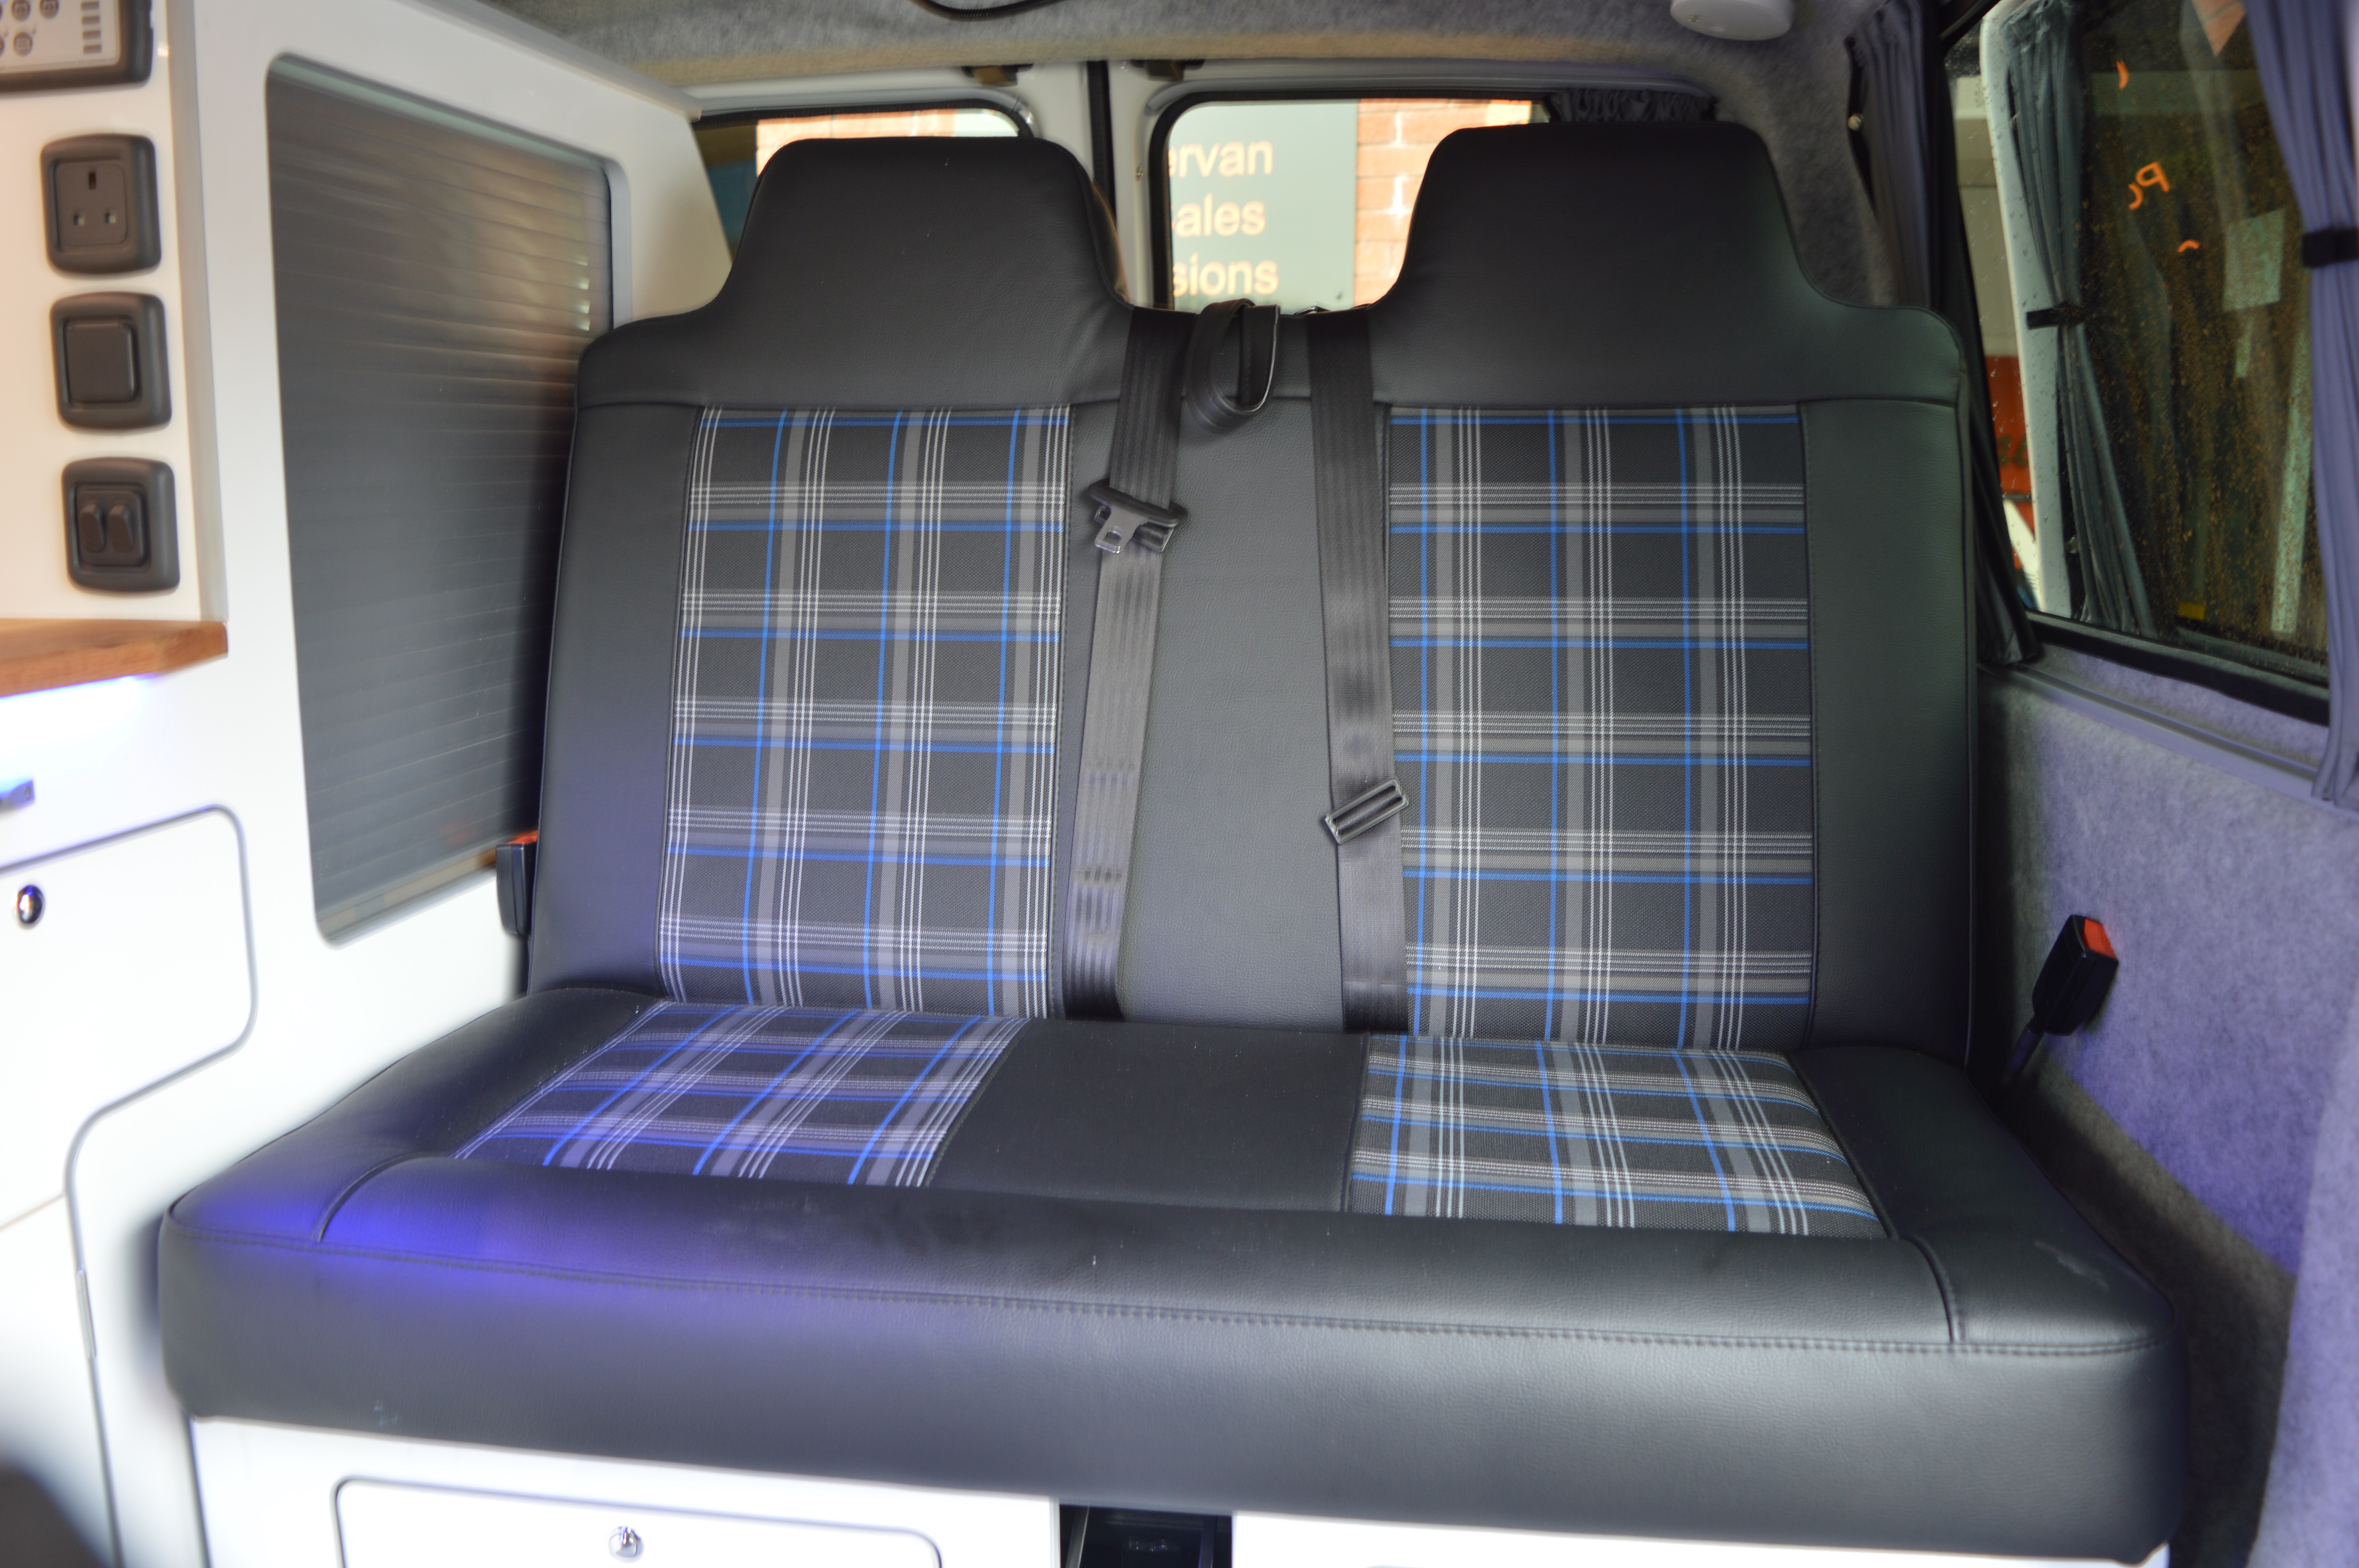 Our Latest Gti Fabric Rnr Bed Amp Front Seats Rnr Beds By